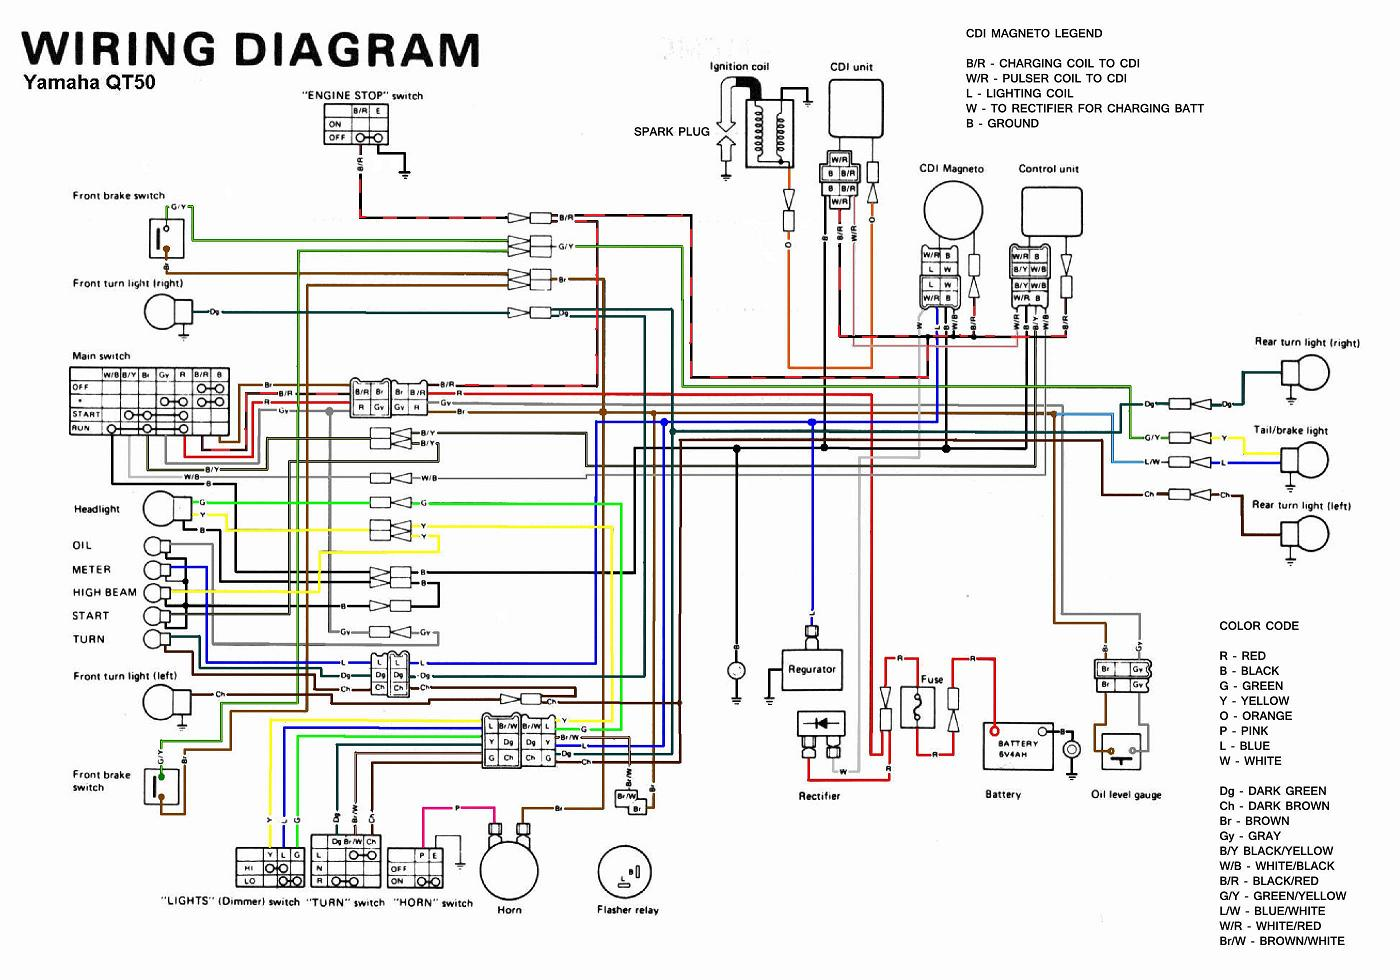 Sterling Acterra Wiring Diagram likewise Xs650 Chopper   Wiring Diagram together with Intertherm Sequencer Wiring Diagram besides Map Sensor Location Jeep Cherokee Xj likewise 4 Bag Air Suspension Wiring Diagram. on free lincoln wiring diagrams